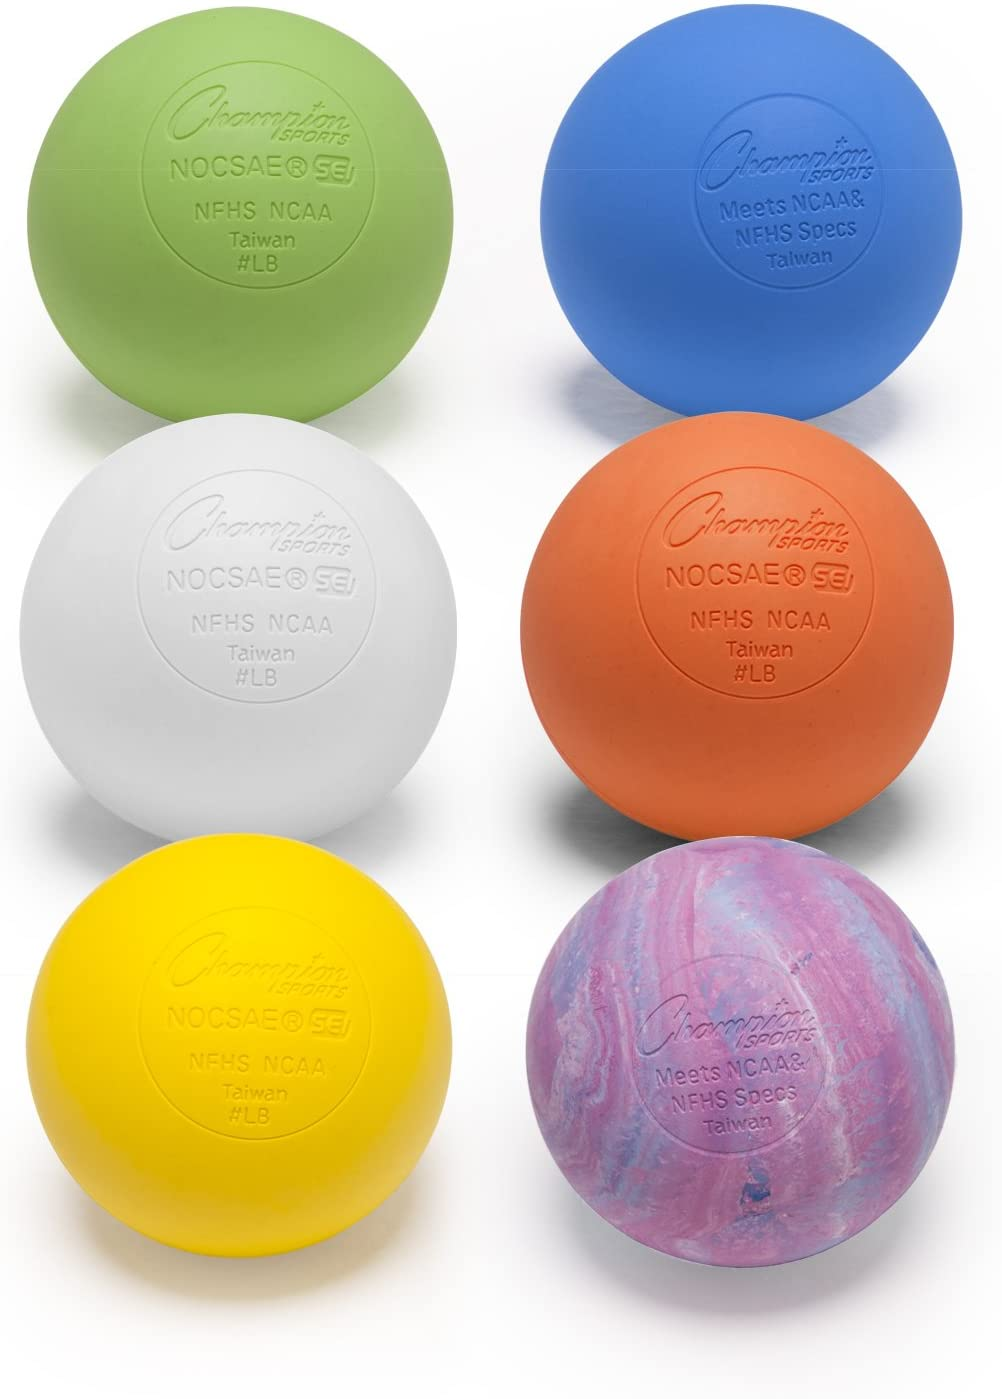 Champion Sports Official Lacrosse Balls - Multiple Colors in Packs of 1, 2, 3, 6, and 12